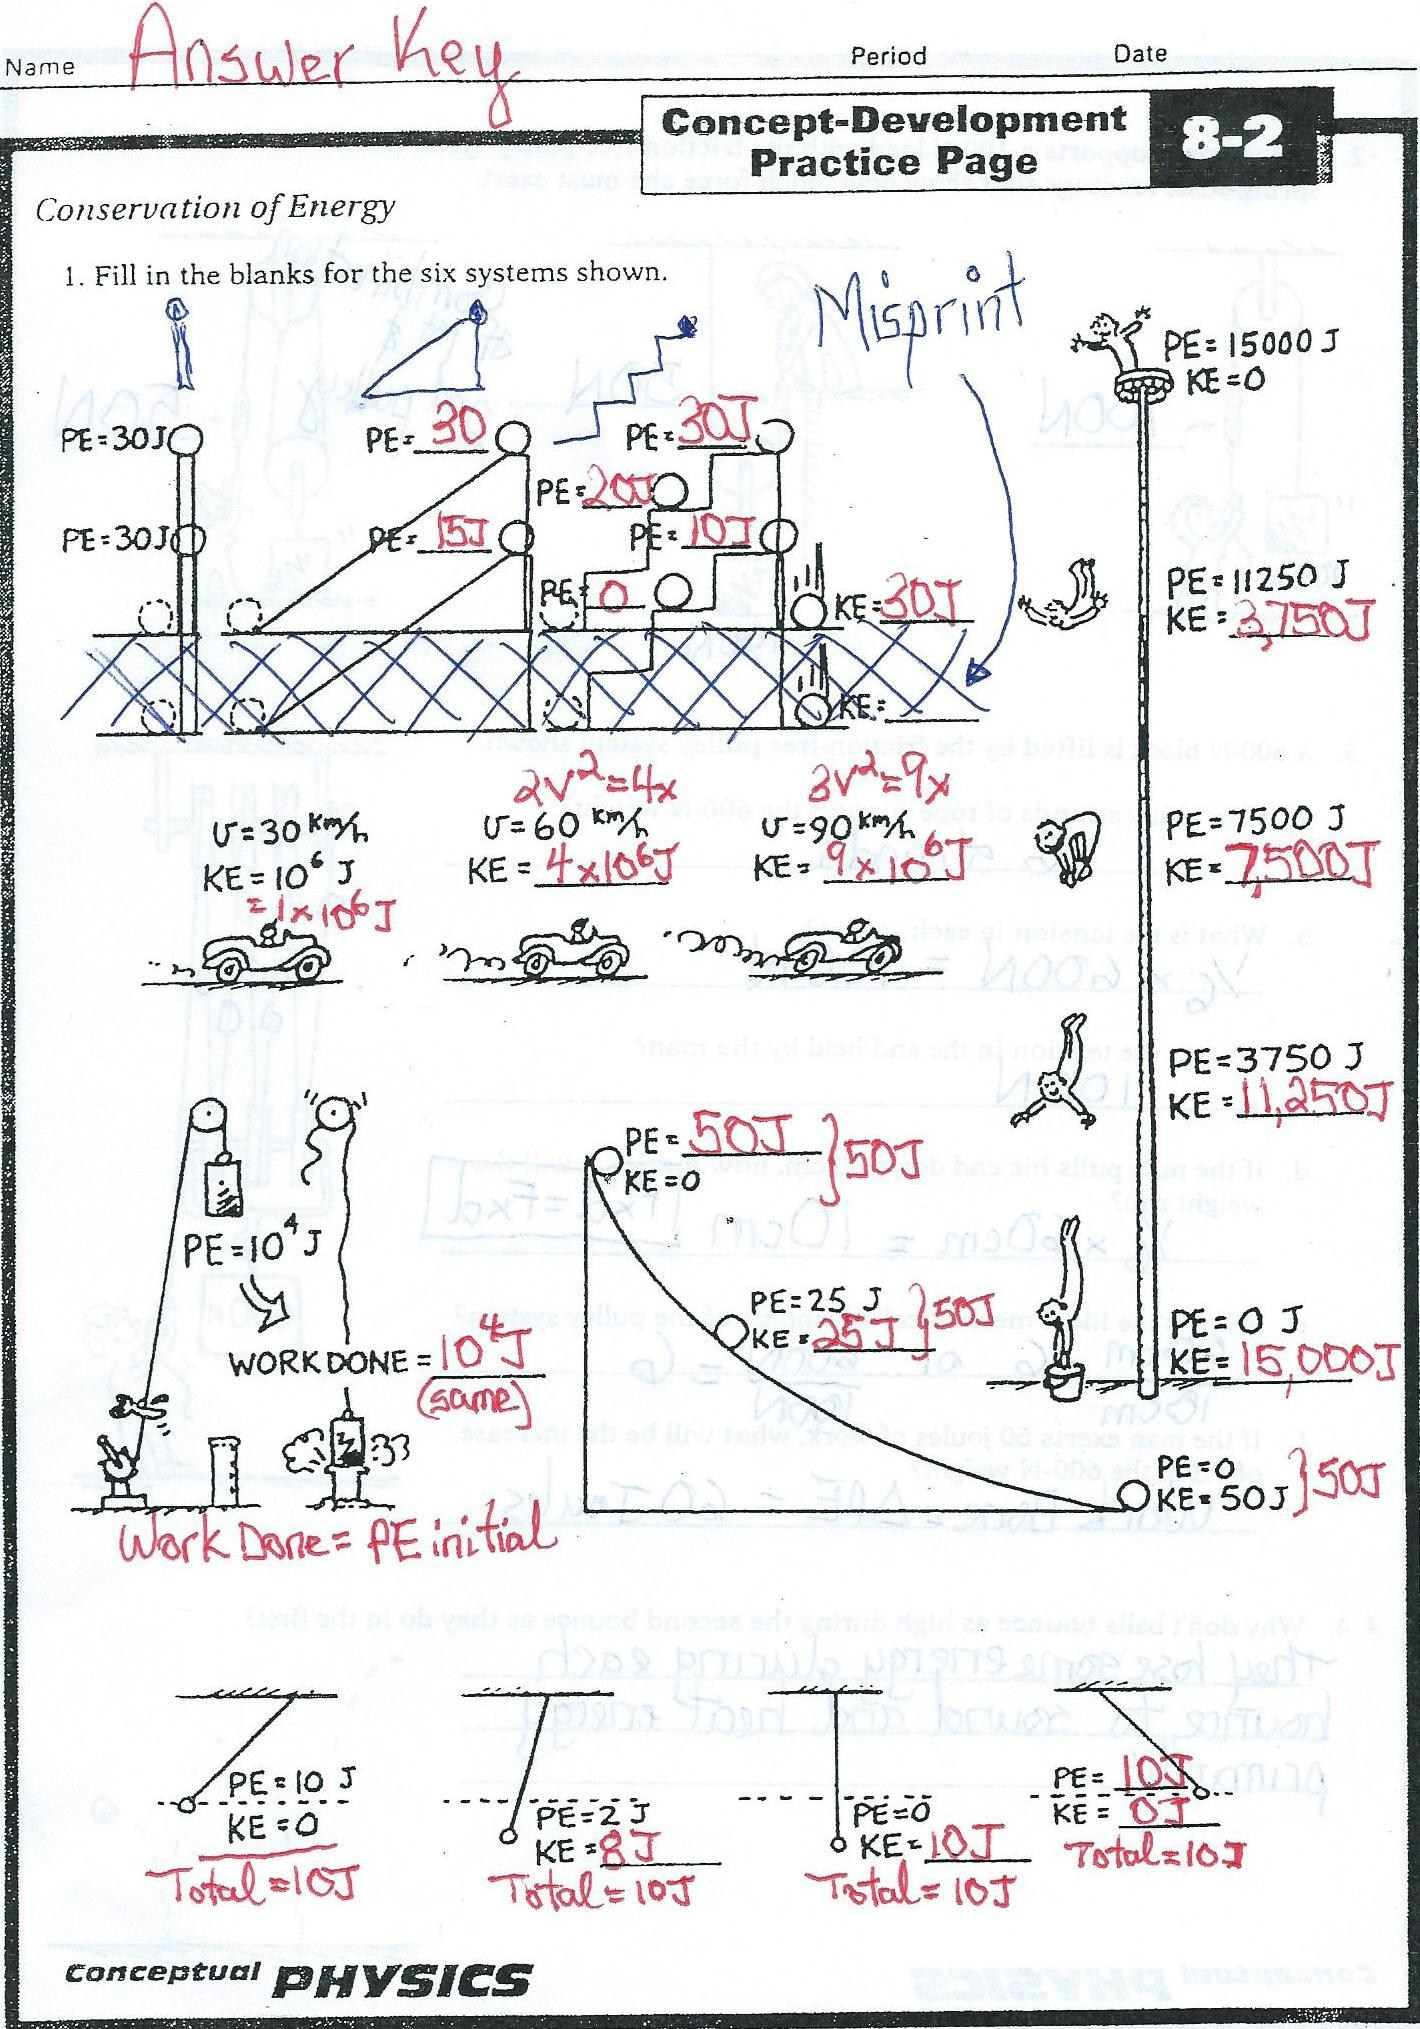 Conservation of energy practice worksheet answers